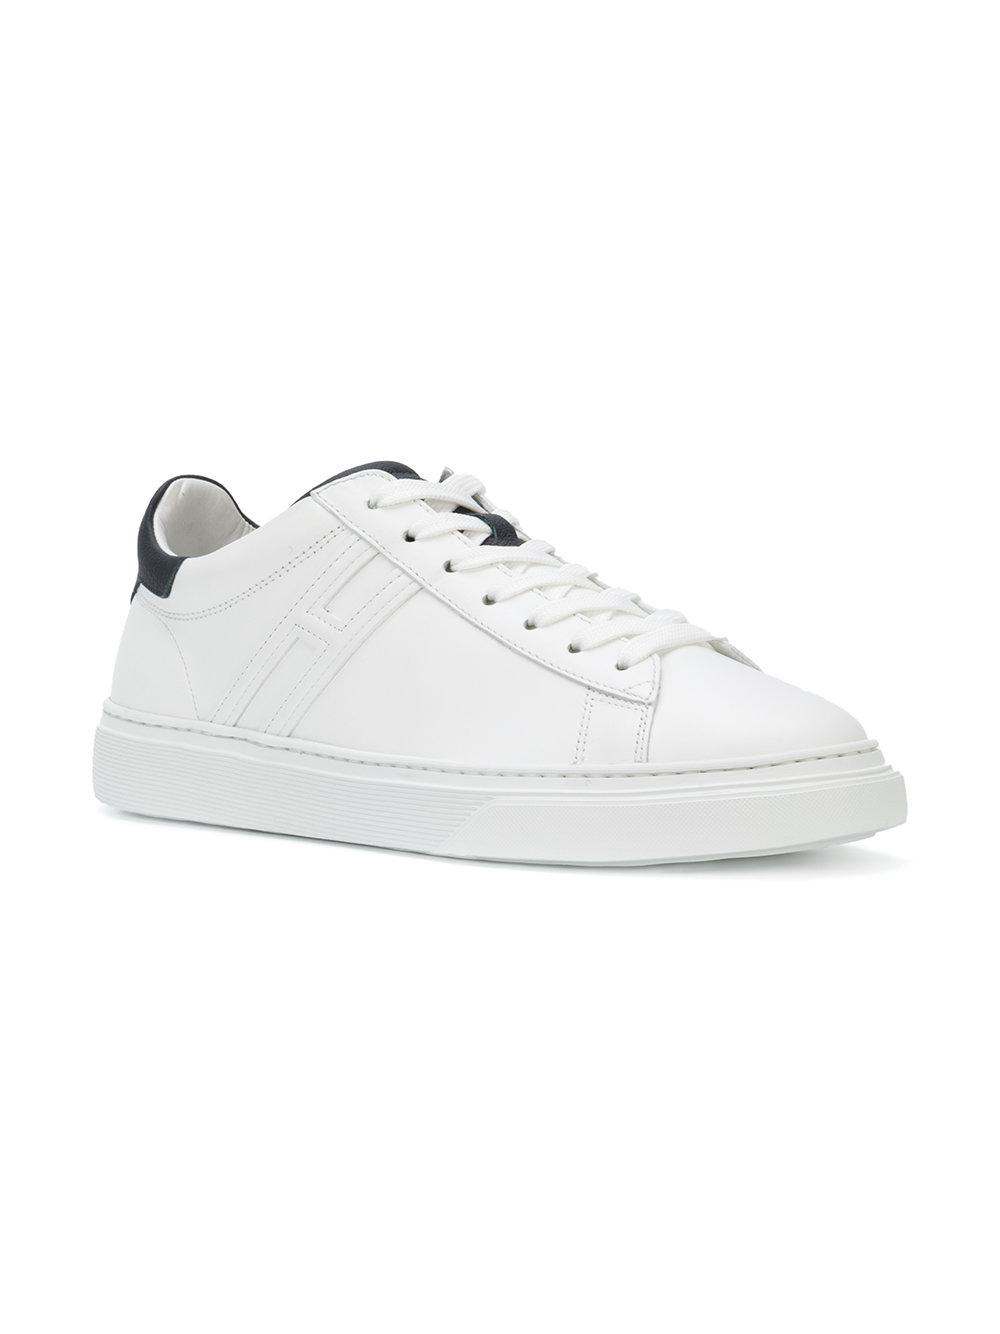 Hogan Embroidered sneakers Sale Pay With Paypal eSTT3T